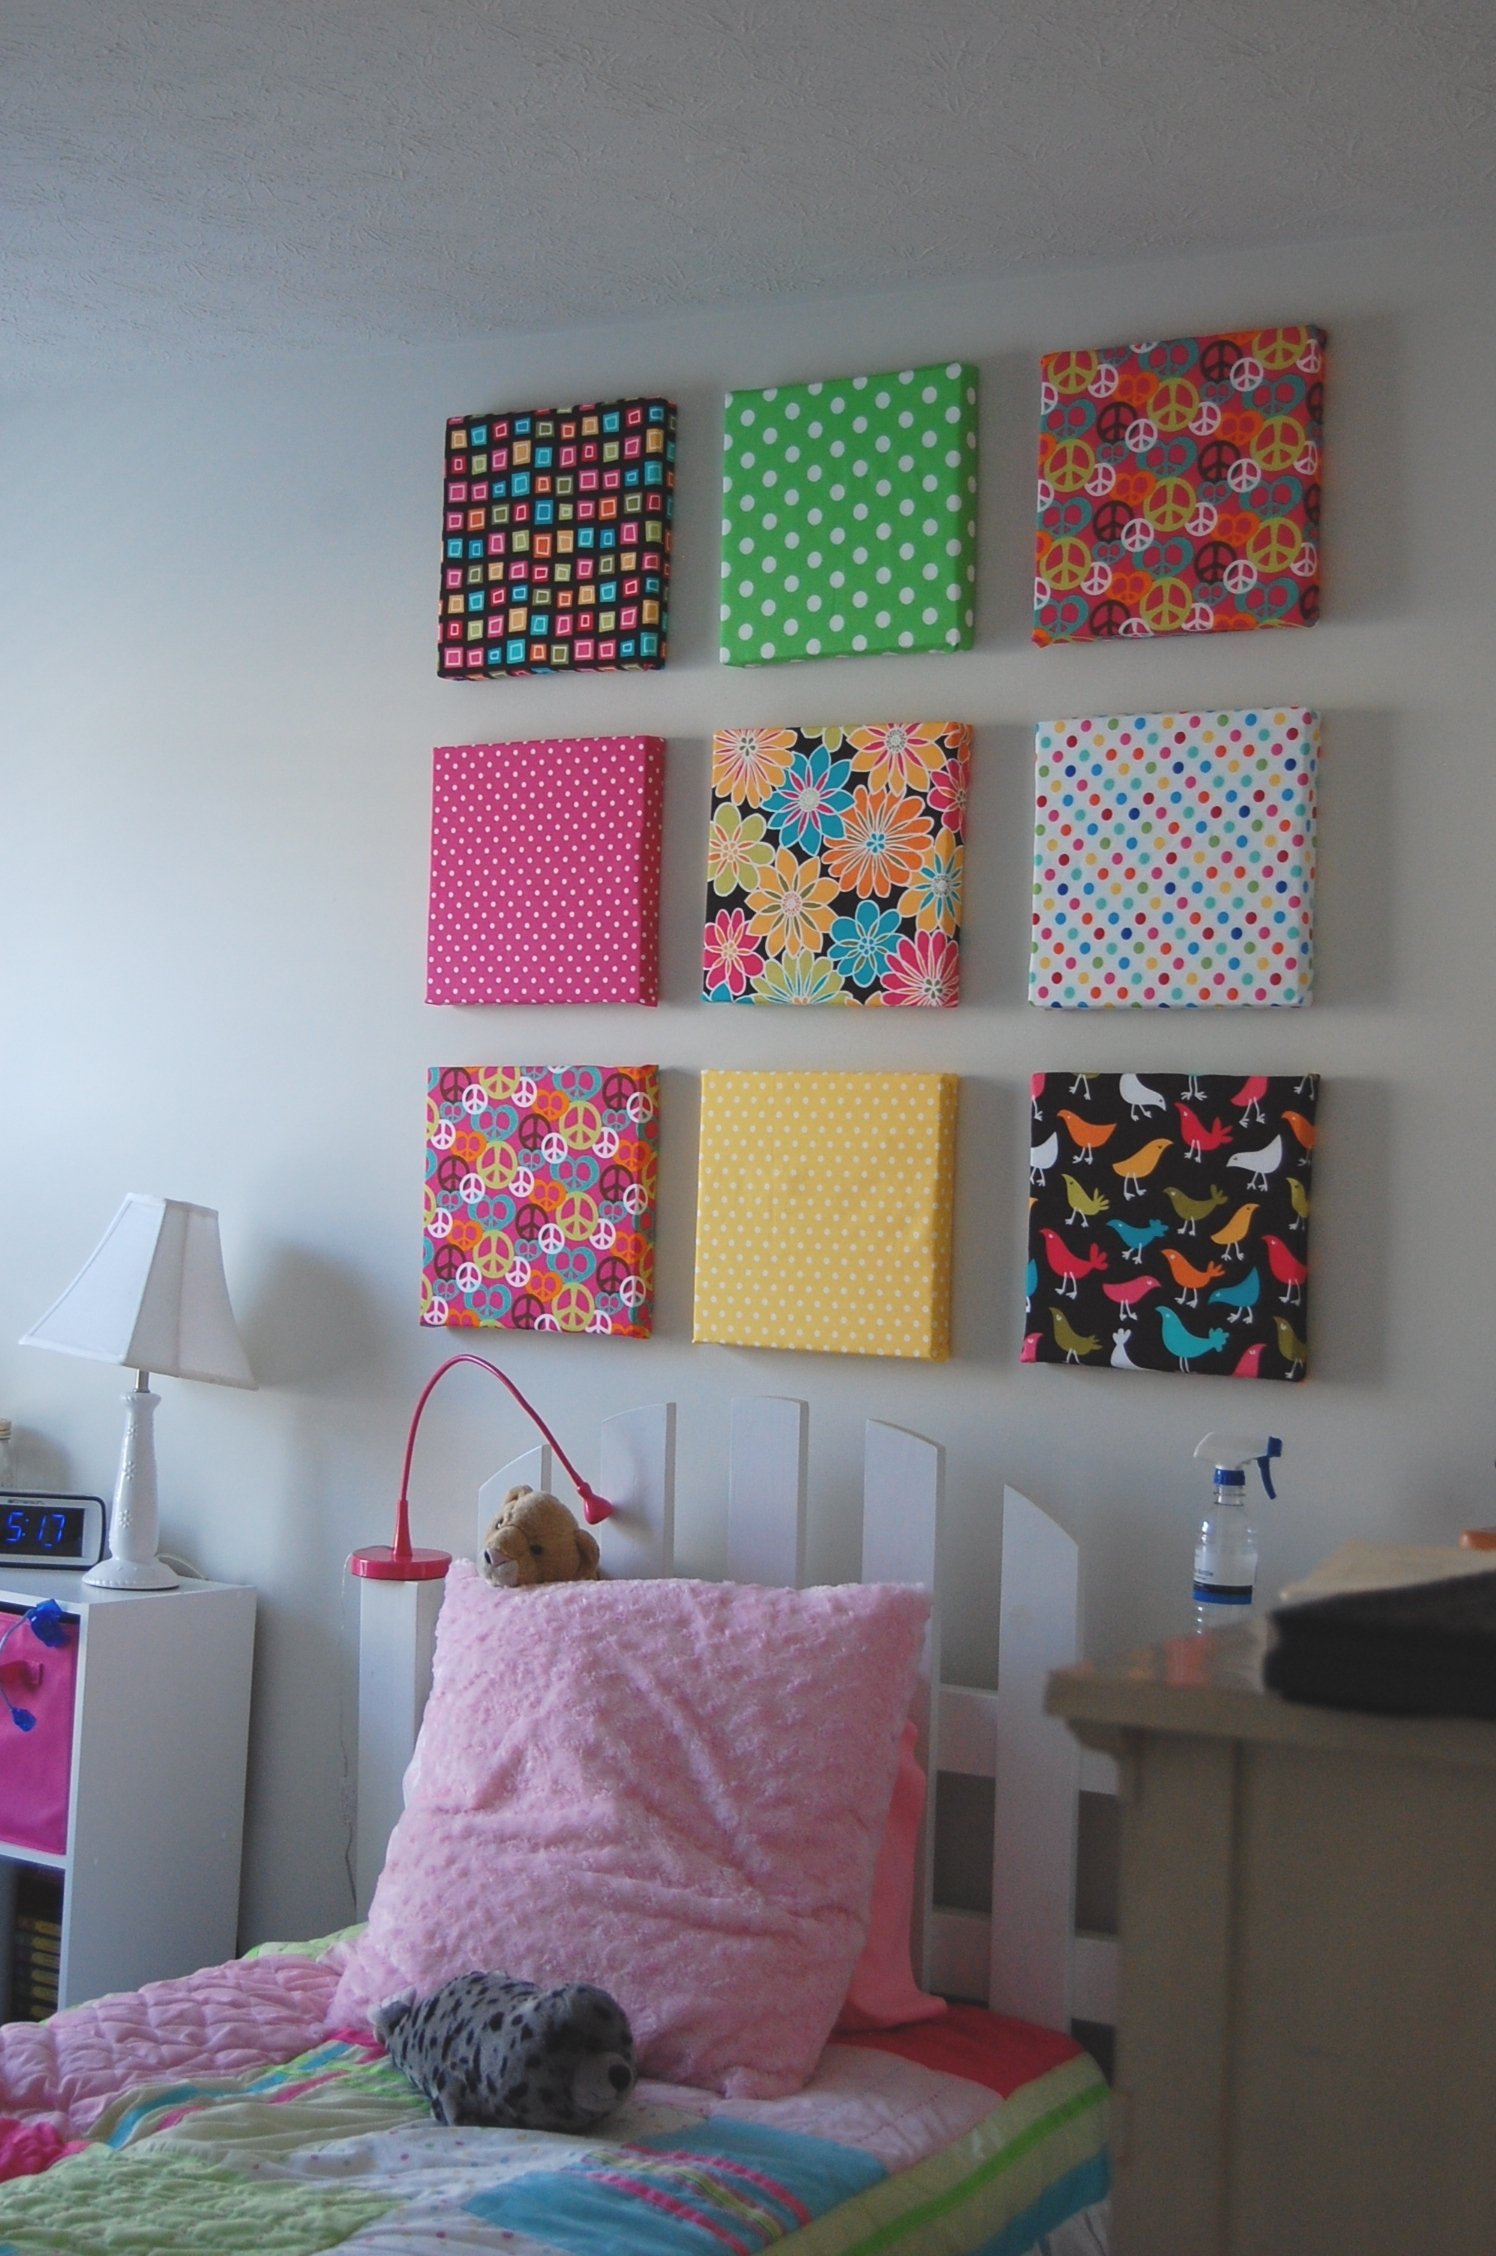 Finally Finished My Daughter's Room (View 5 of 15)